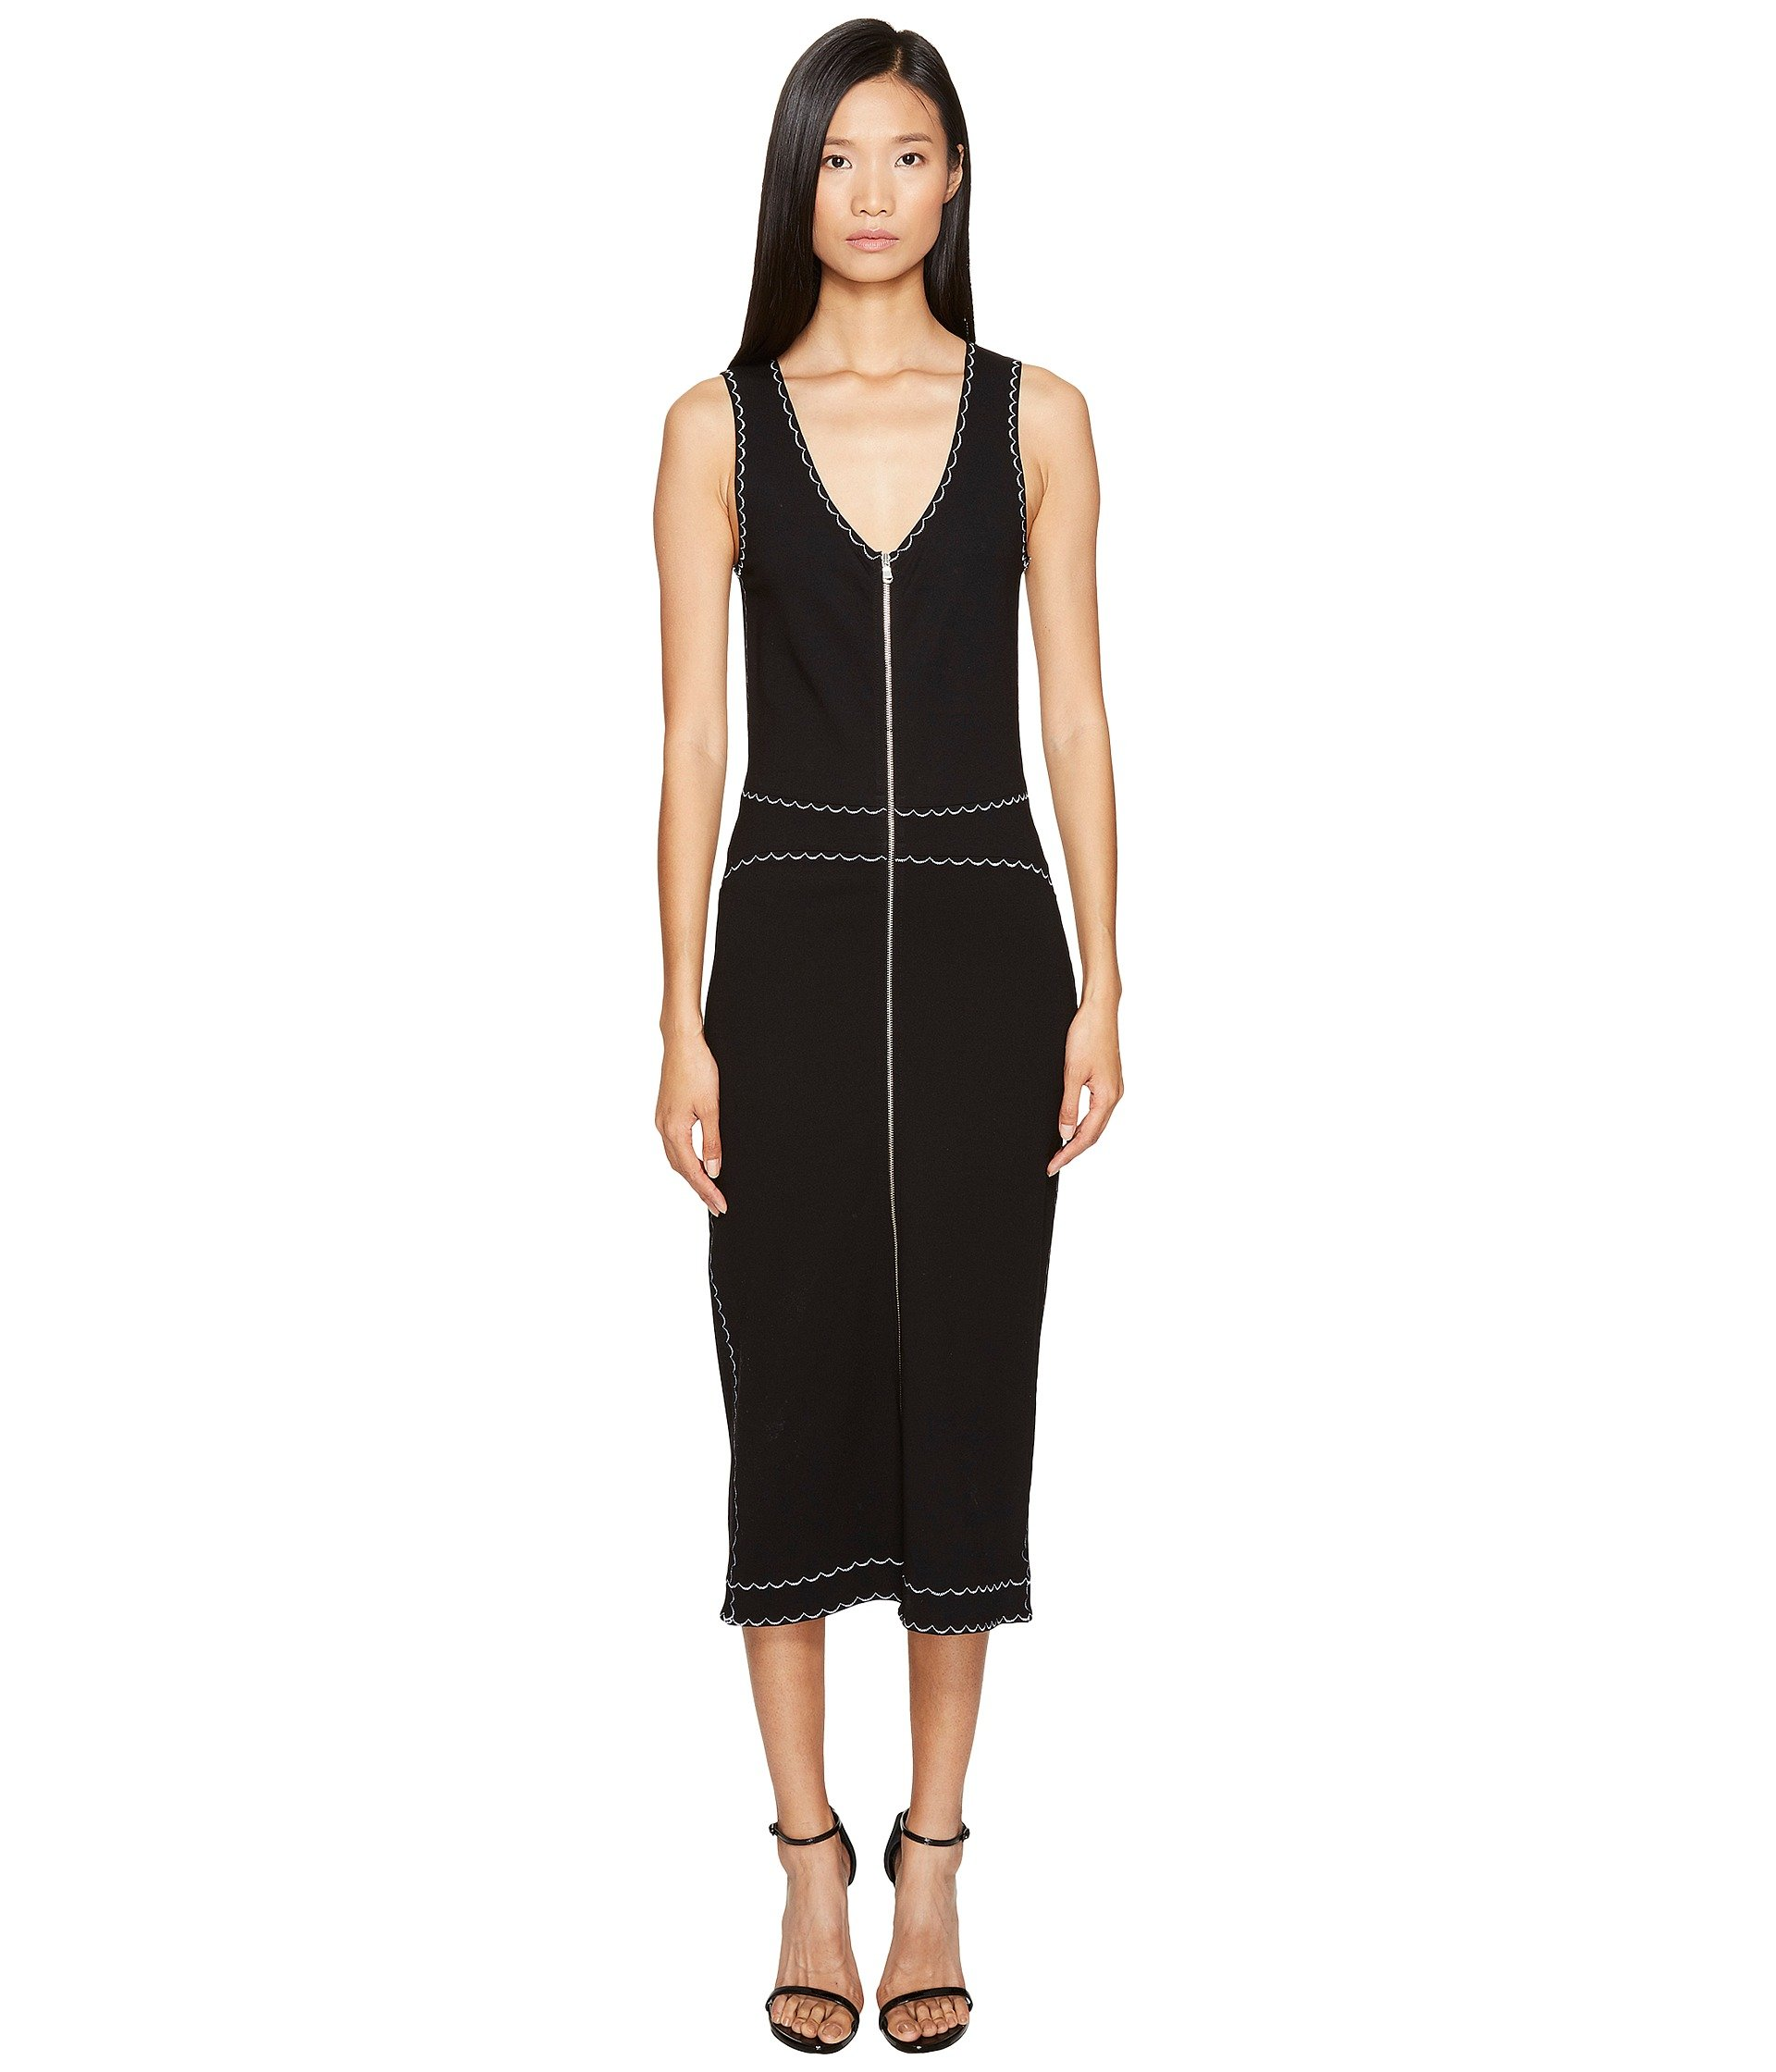 Mcq Alexander Mcqueen Woman Embroidered Ponte Midi Dress Black Size L Alexander McQueen yR3D7LG